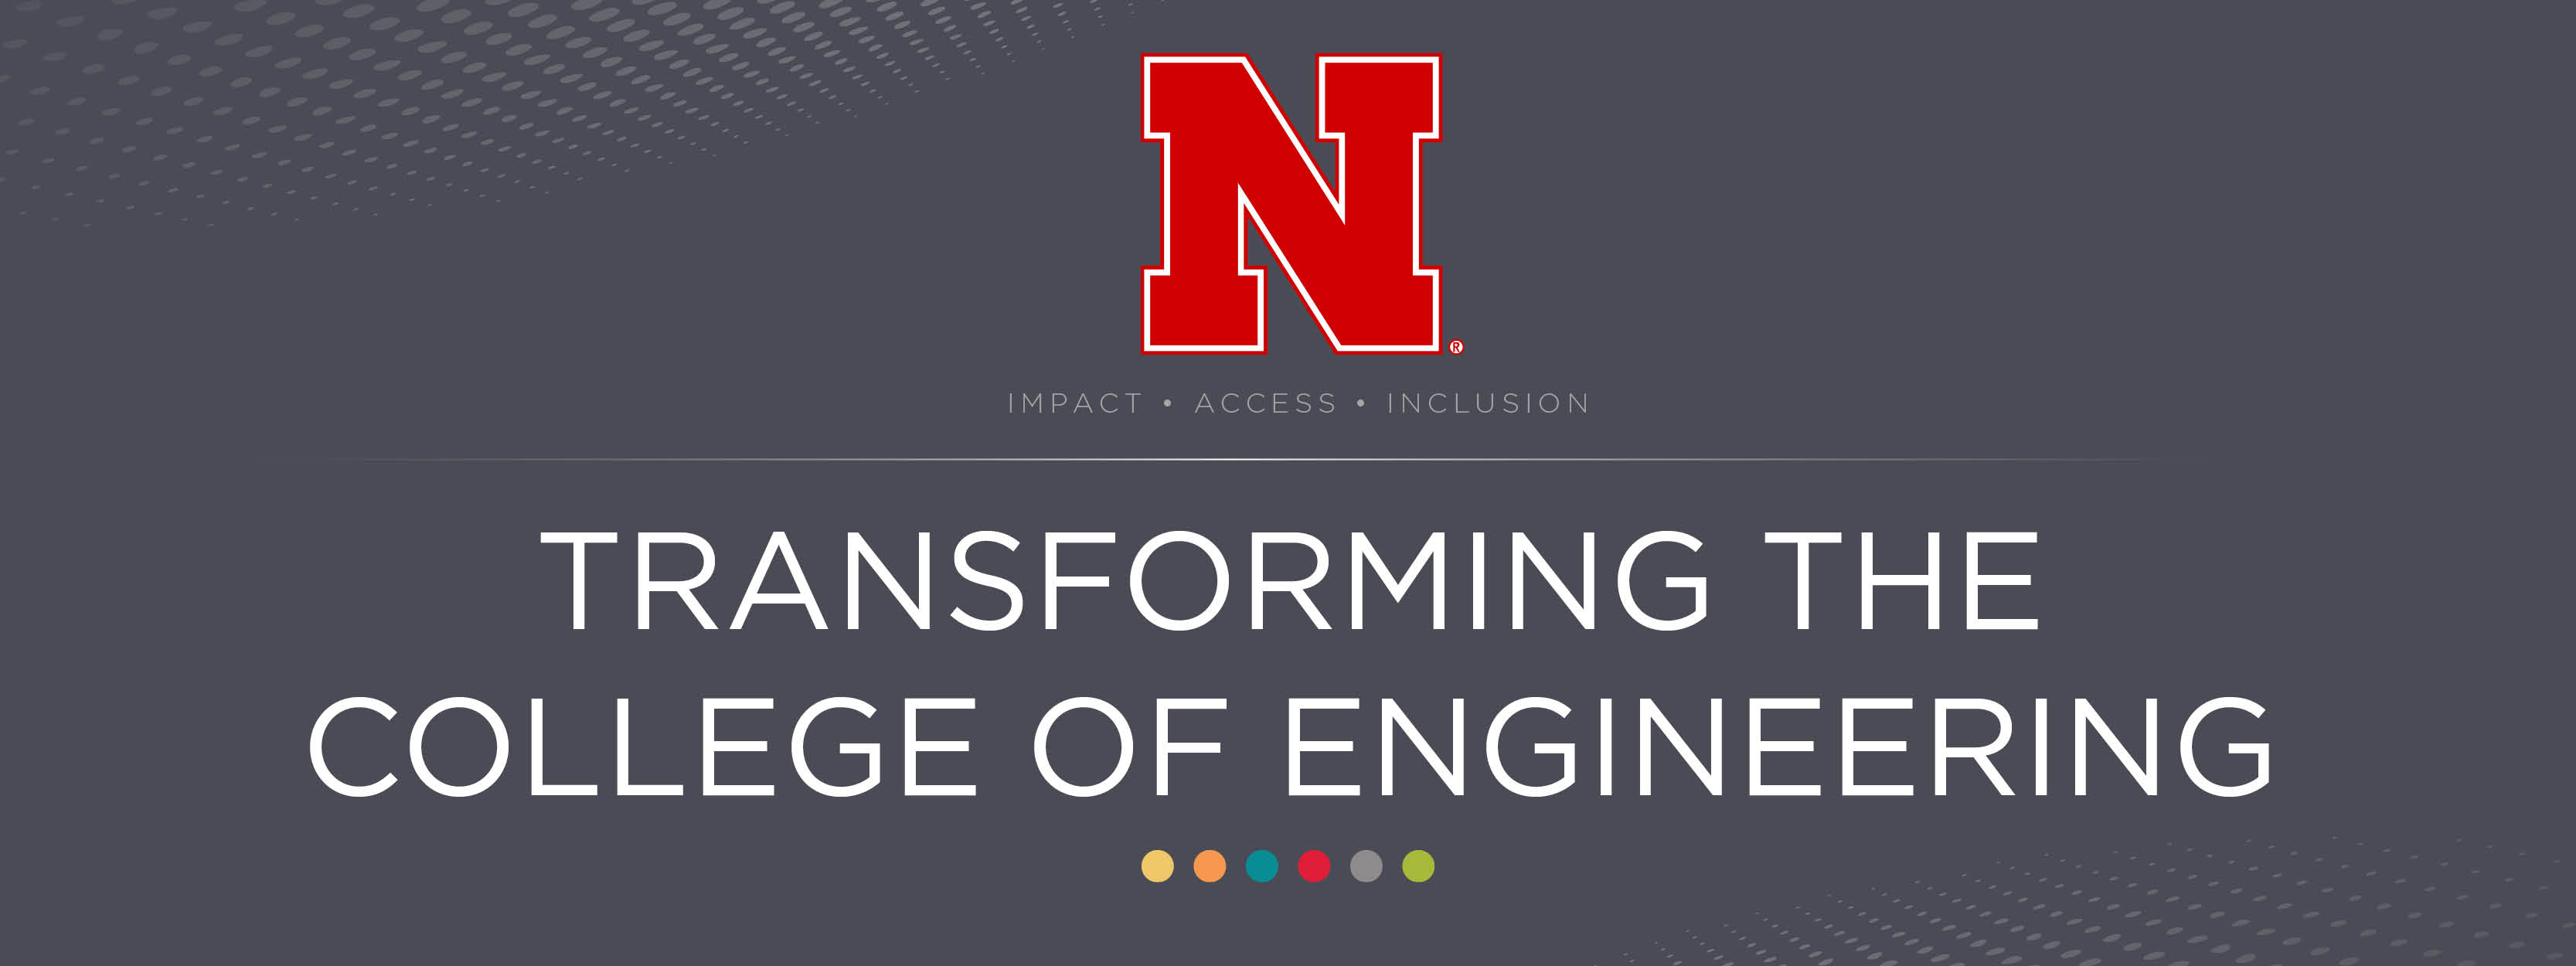 Transforming the College of Engineering